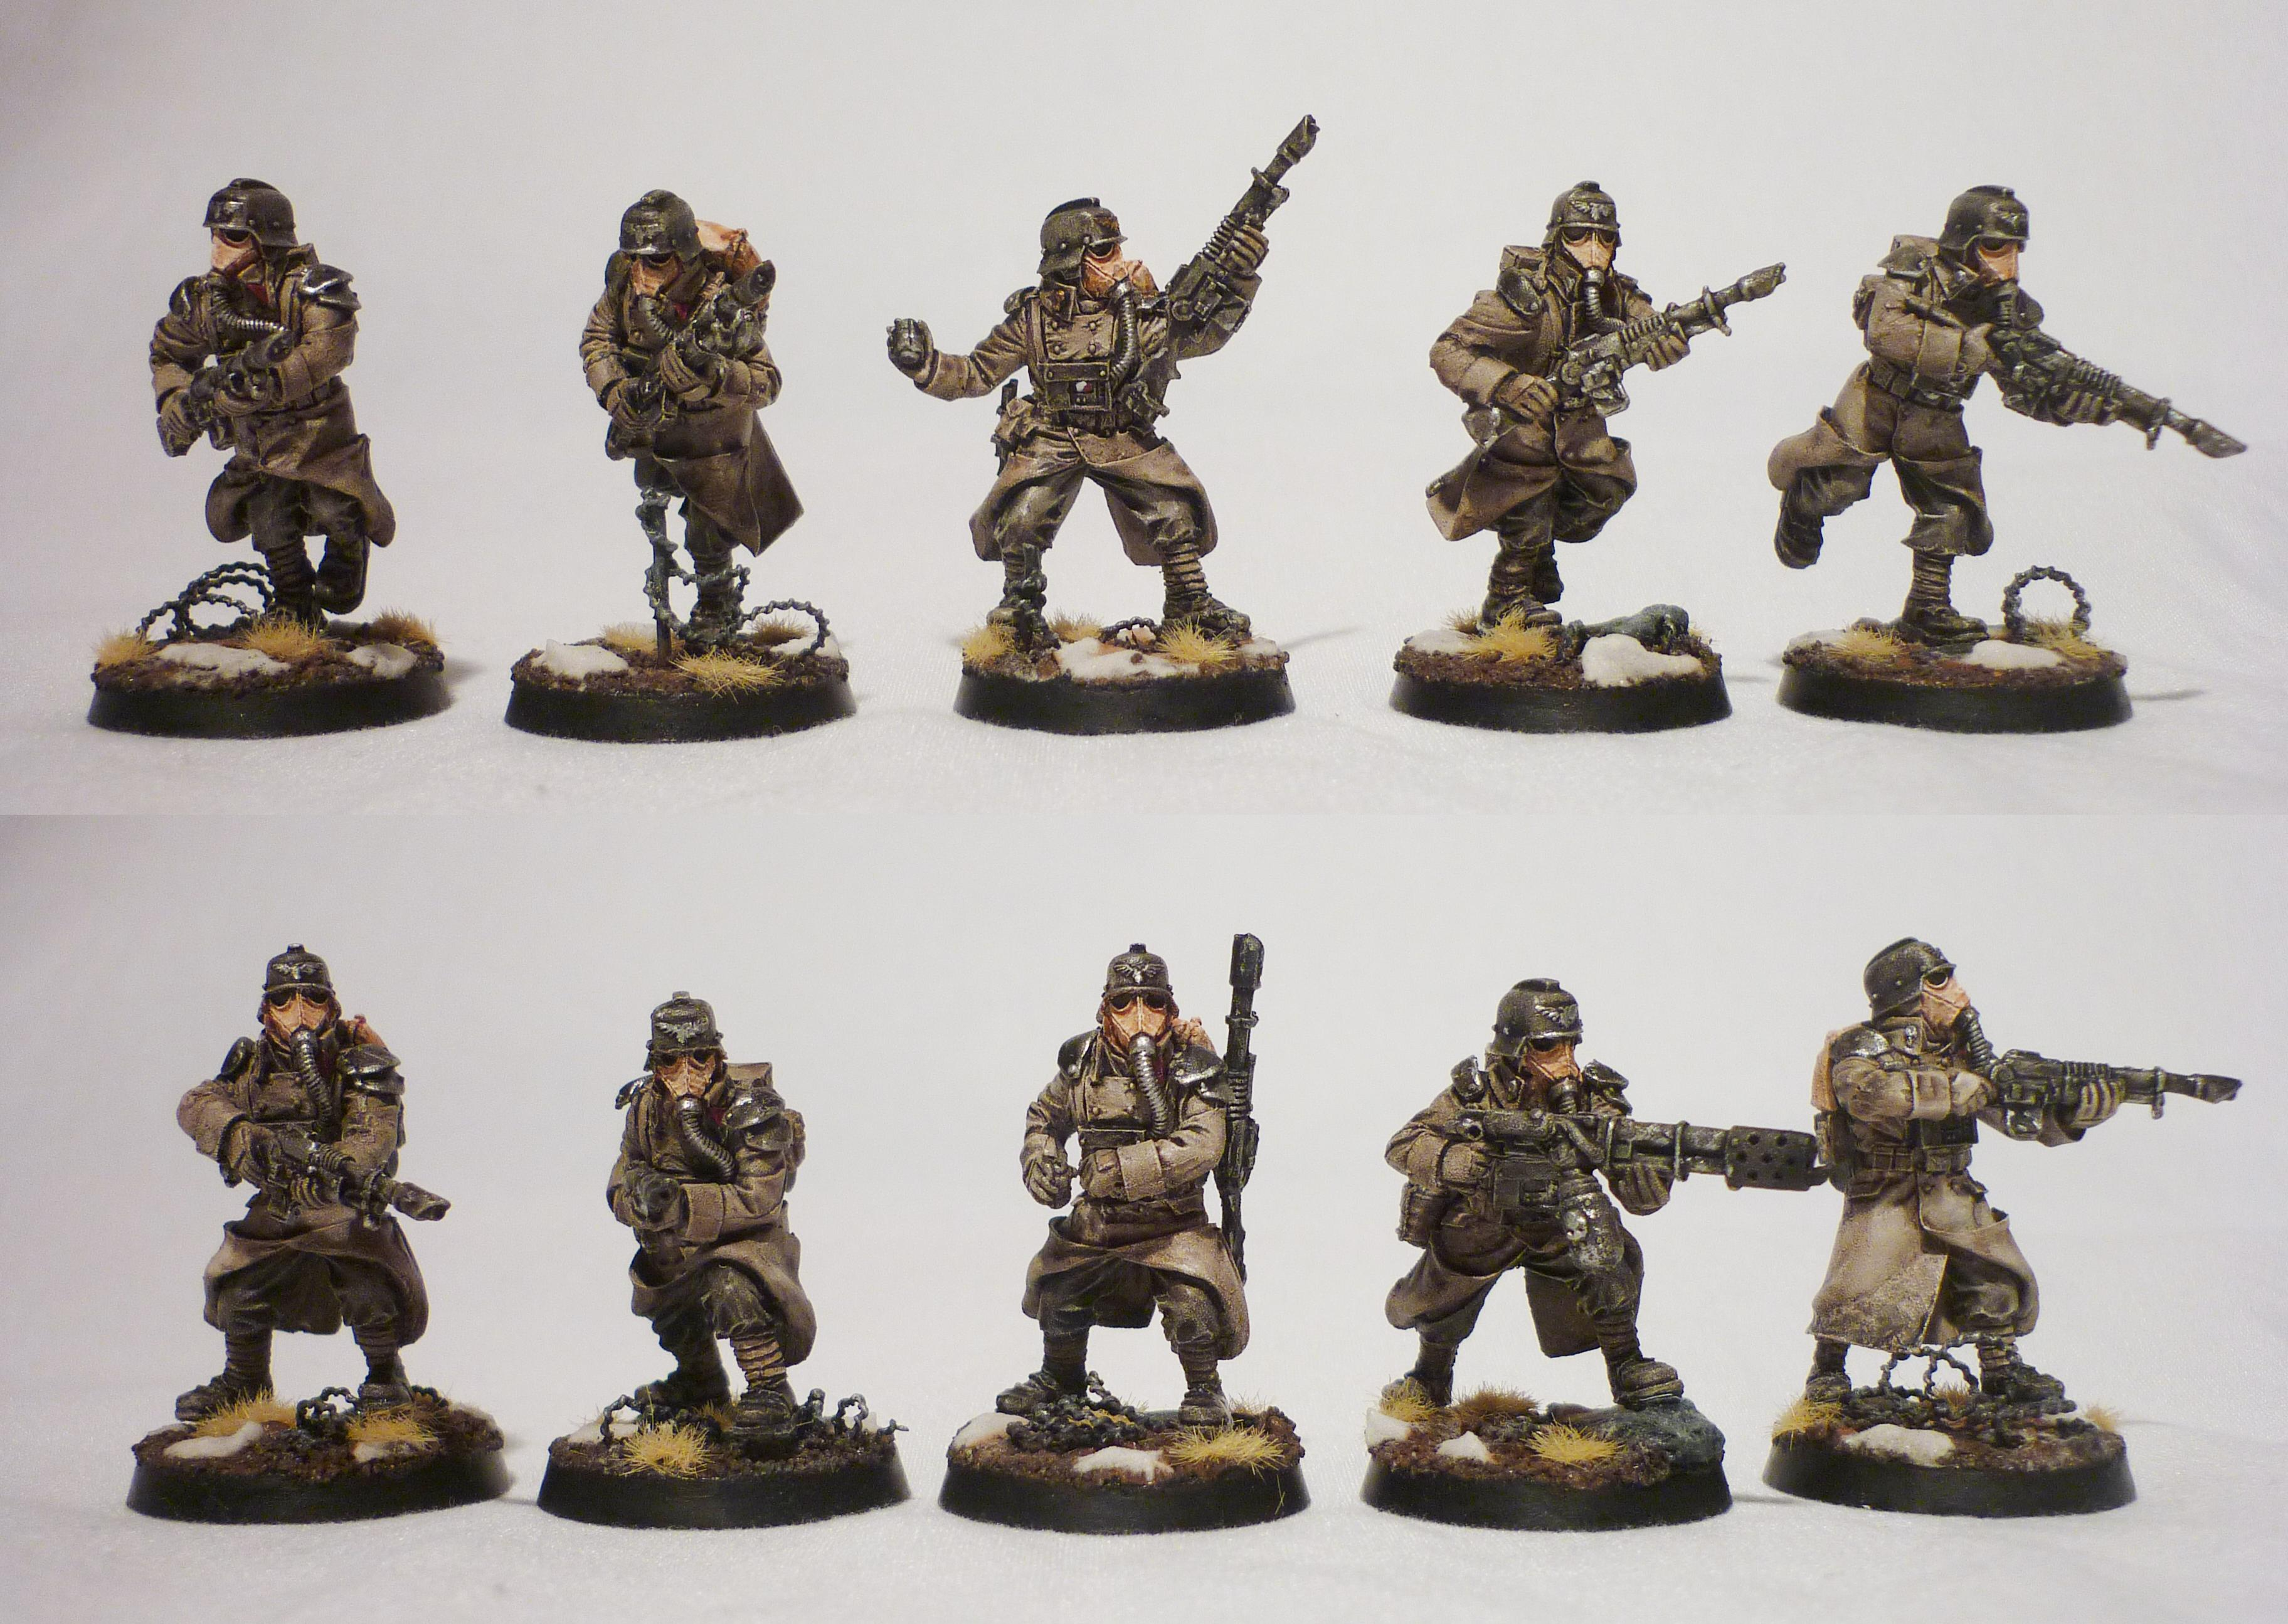 Death Korps of Krieg, Grenadier, Grim Dark. Guardsmen, Imperial Guard, Lasmen, Mud, Platoon, Razorewire, Snow, Squad, Veteran